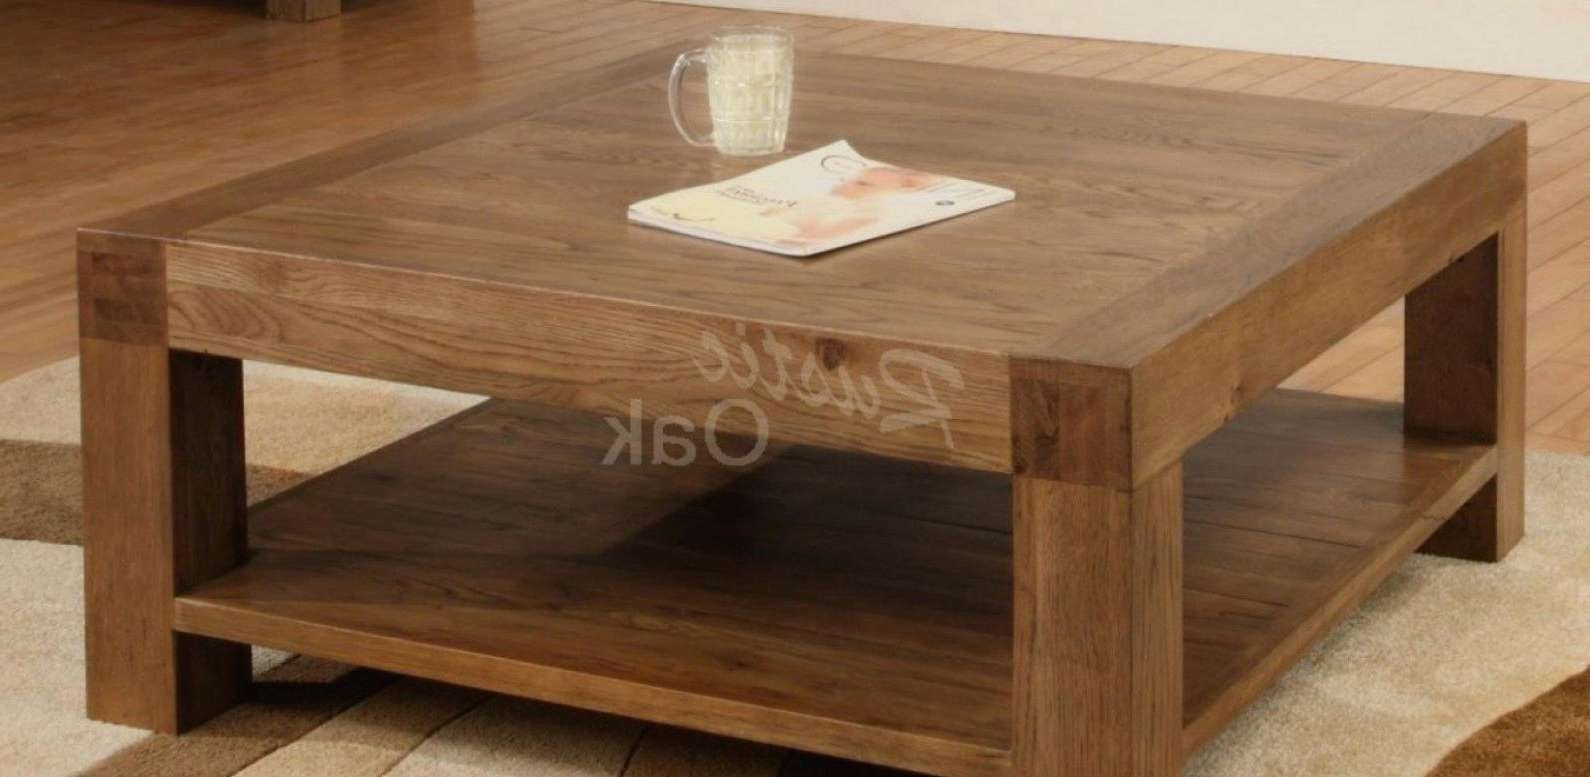 Latest Chunky Rustic Coffee Tables Regarding Coffee Tables : Oval Wood Coffee Table Wooden Sets Dark Cherry (View 10 of 20)